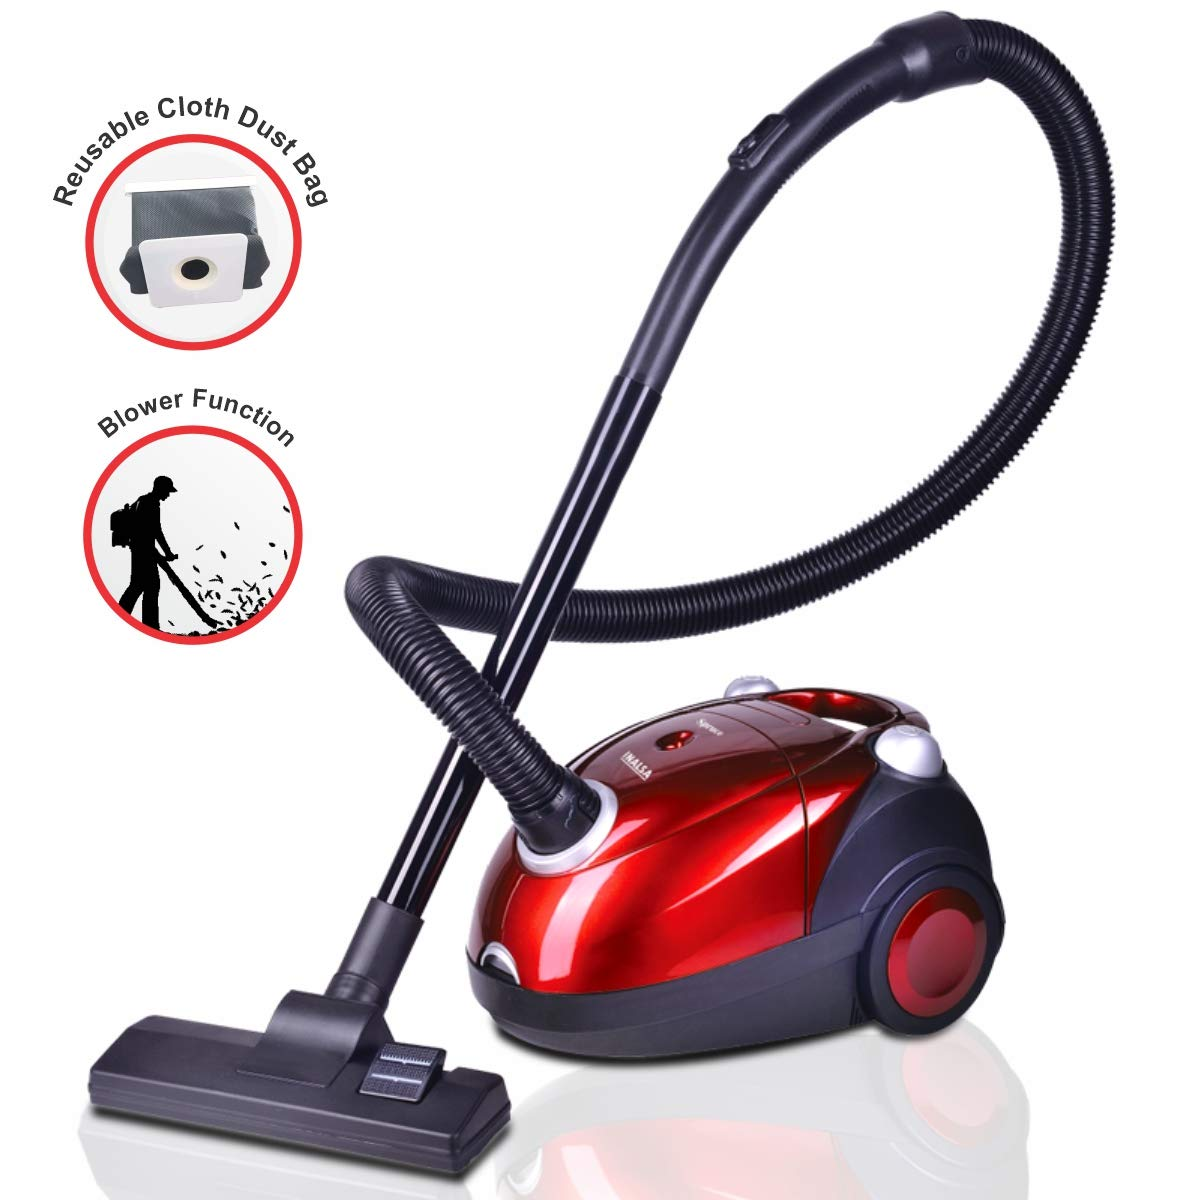 insla-spruce-vacuum-cleaner-for-home-india